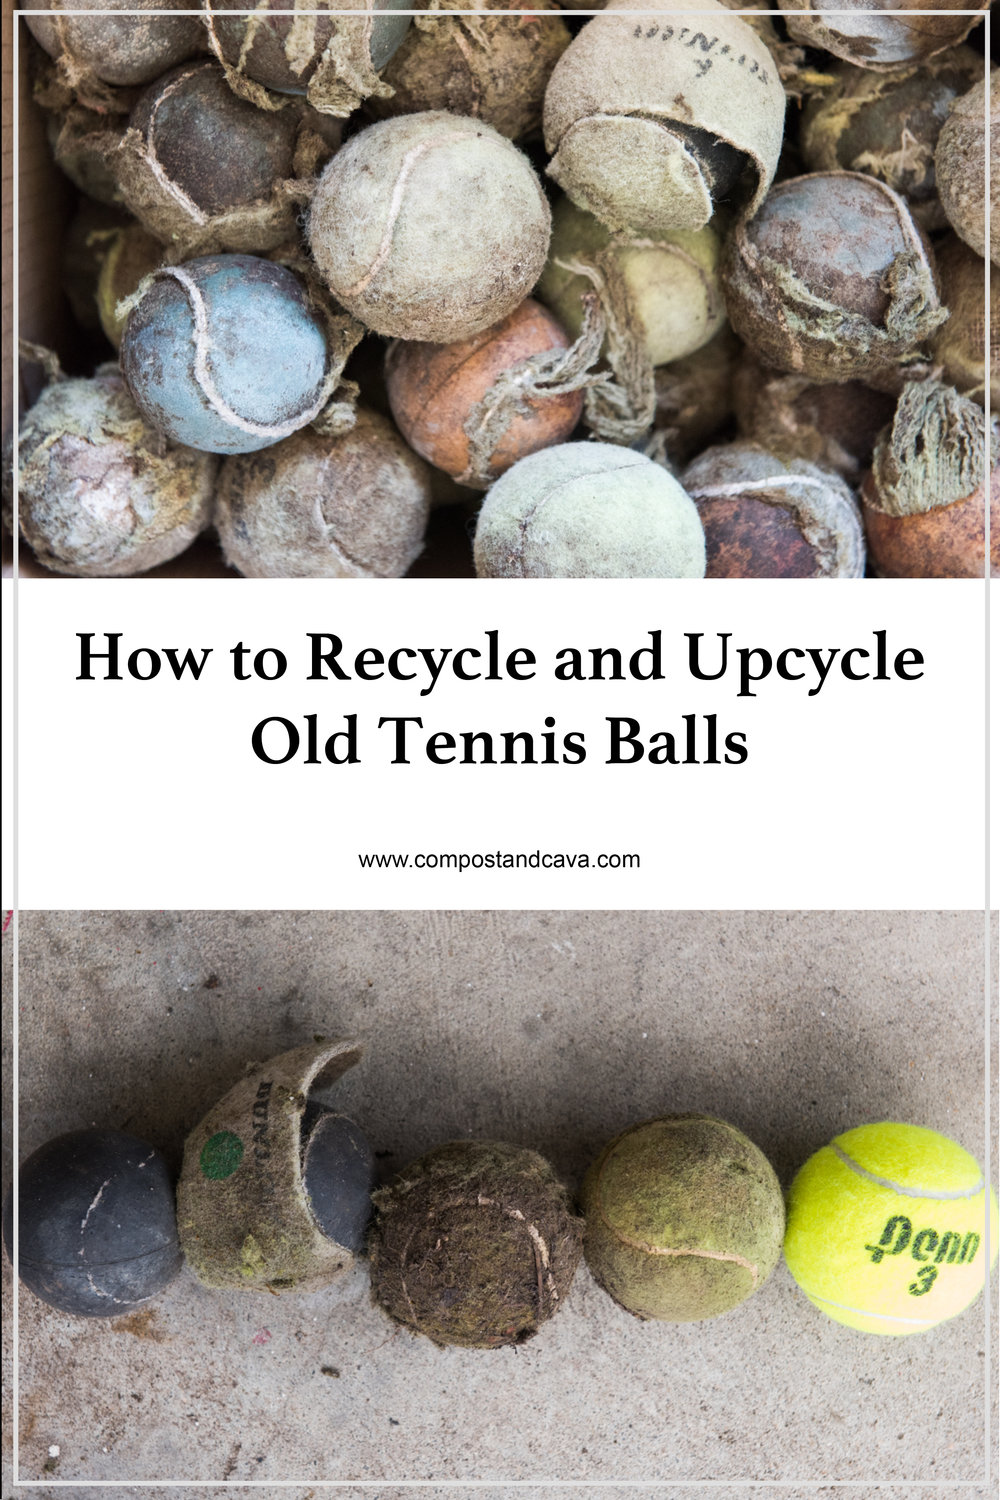 Recycling and Upcycling Old Tennis Balls